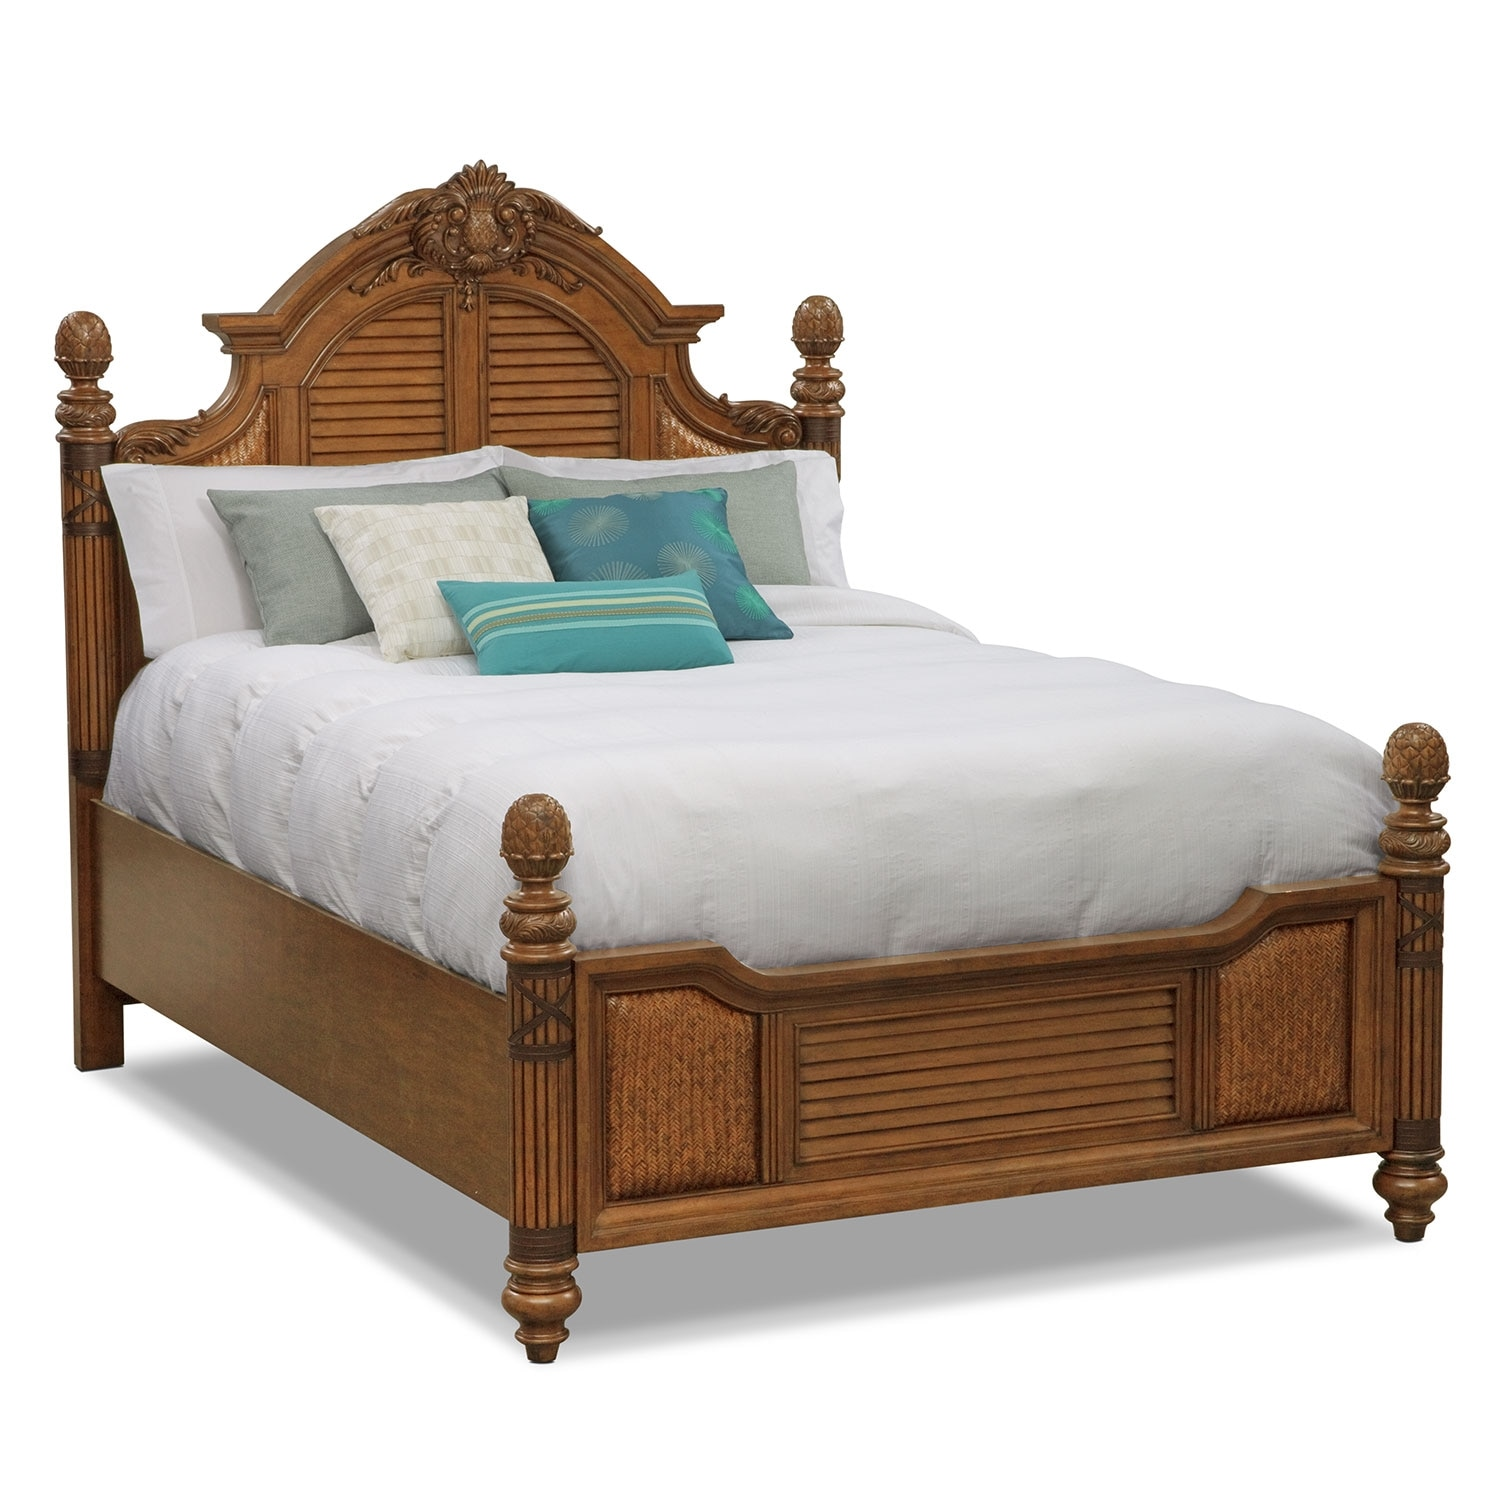 Bedroom Furniture - Key Largo King Bed